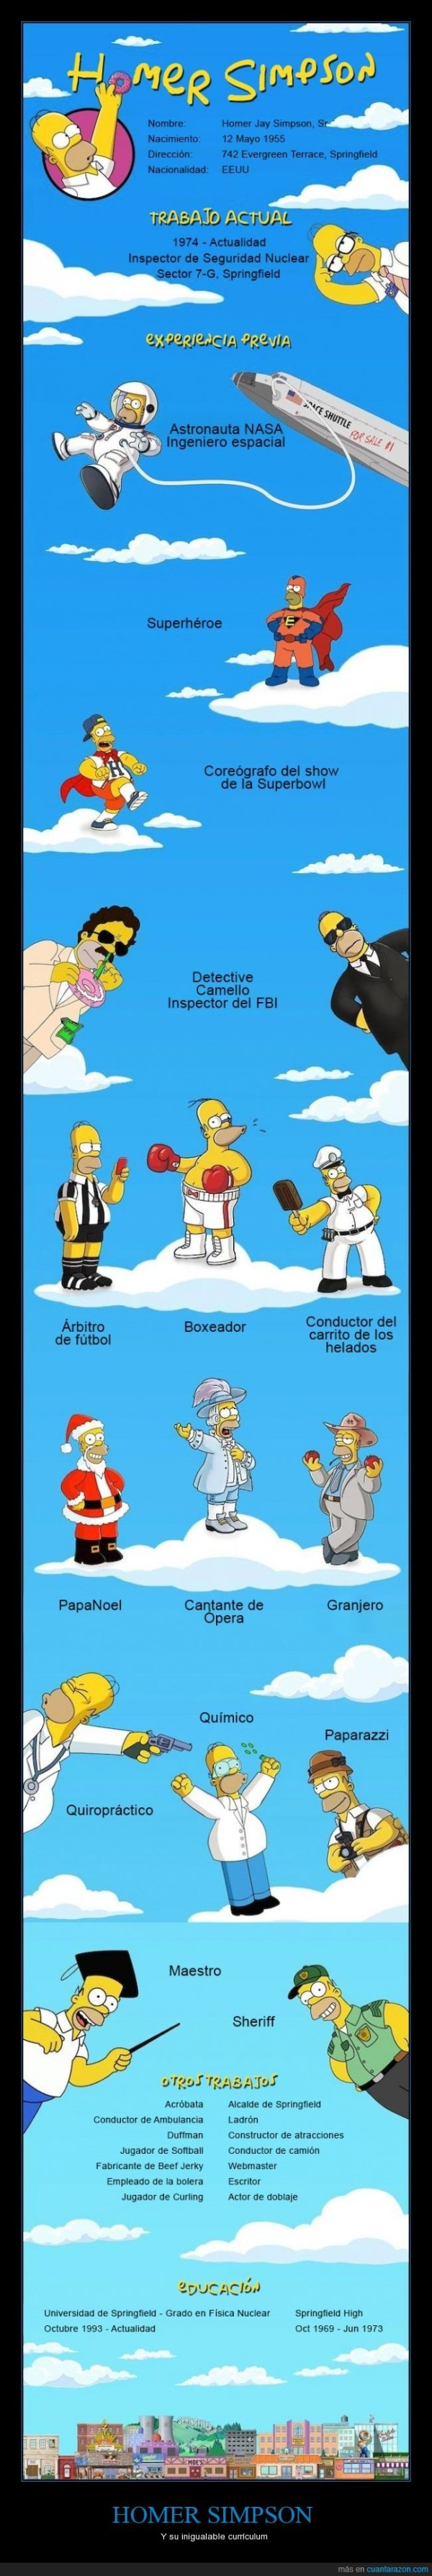 Currículum de Homer Simpson